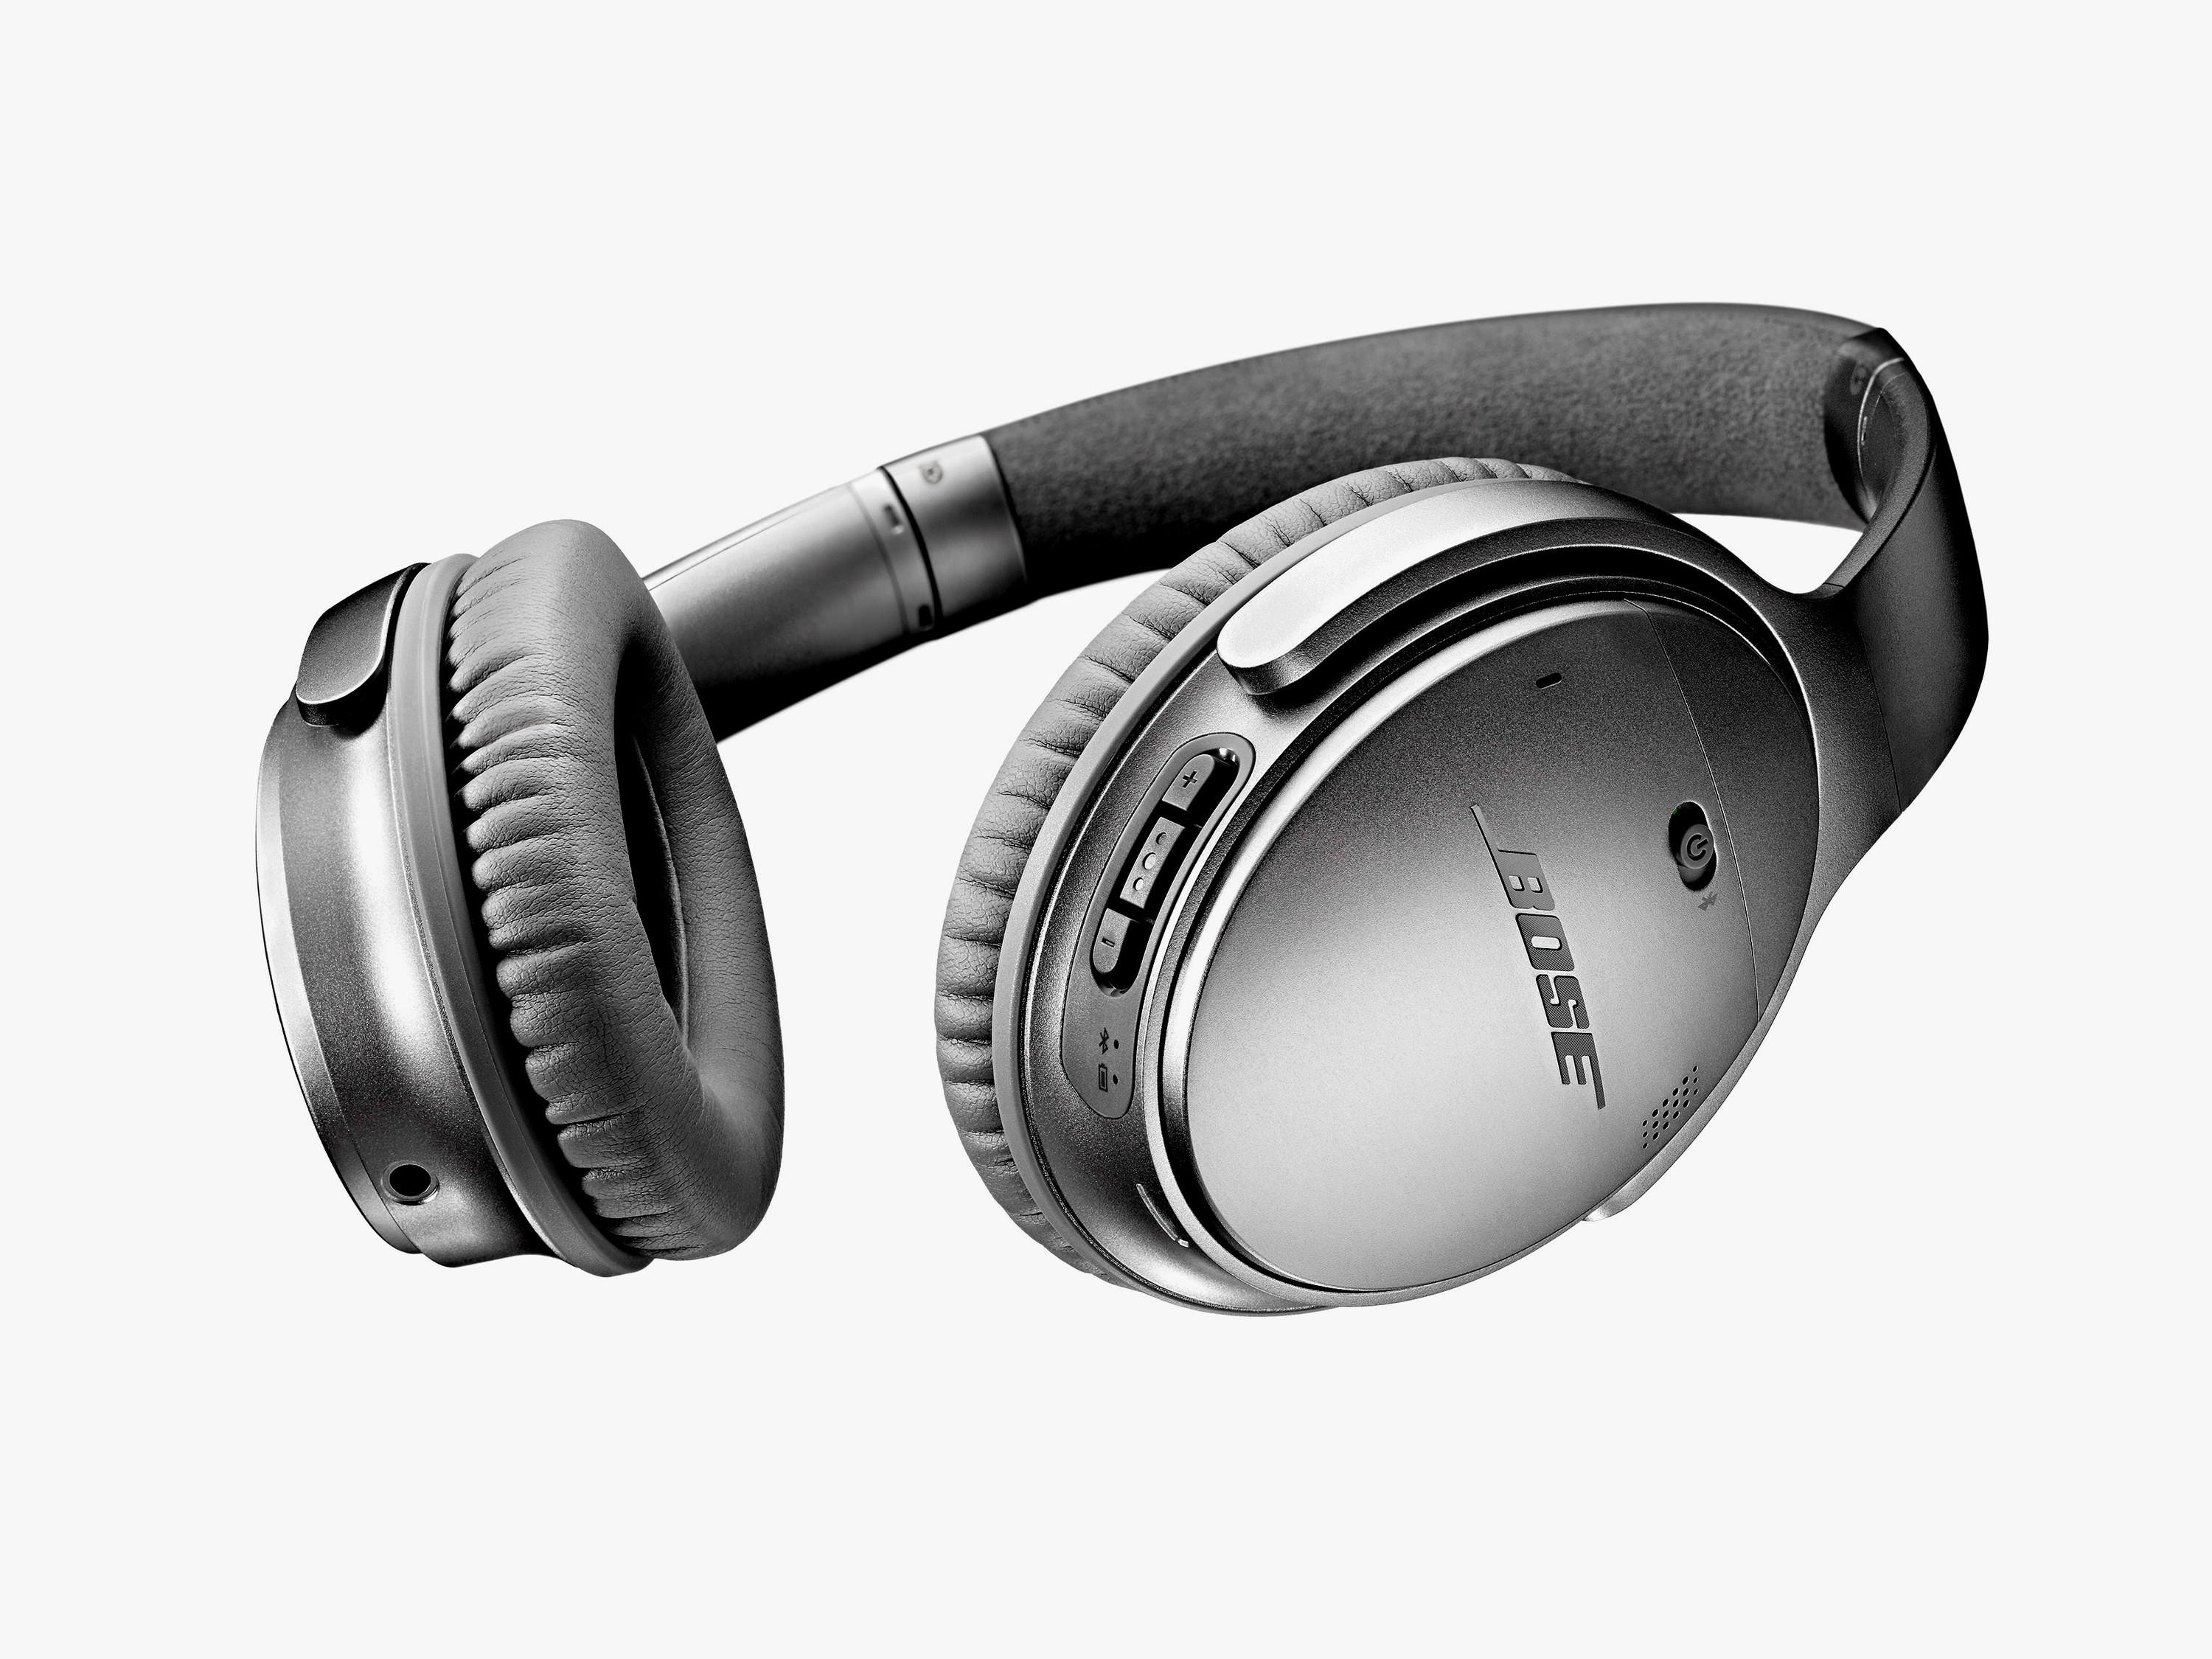 QuietComfort_35_wireless_headphones_-_Silver_1710_2